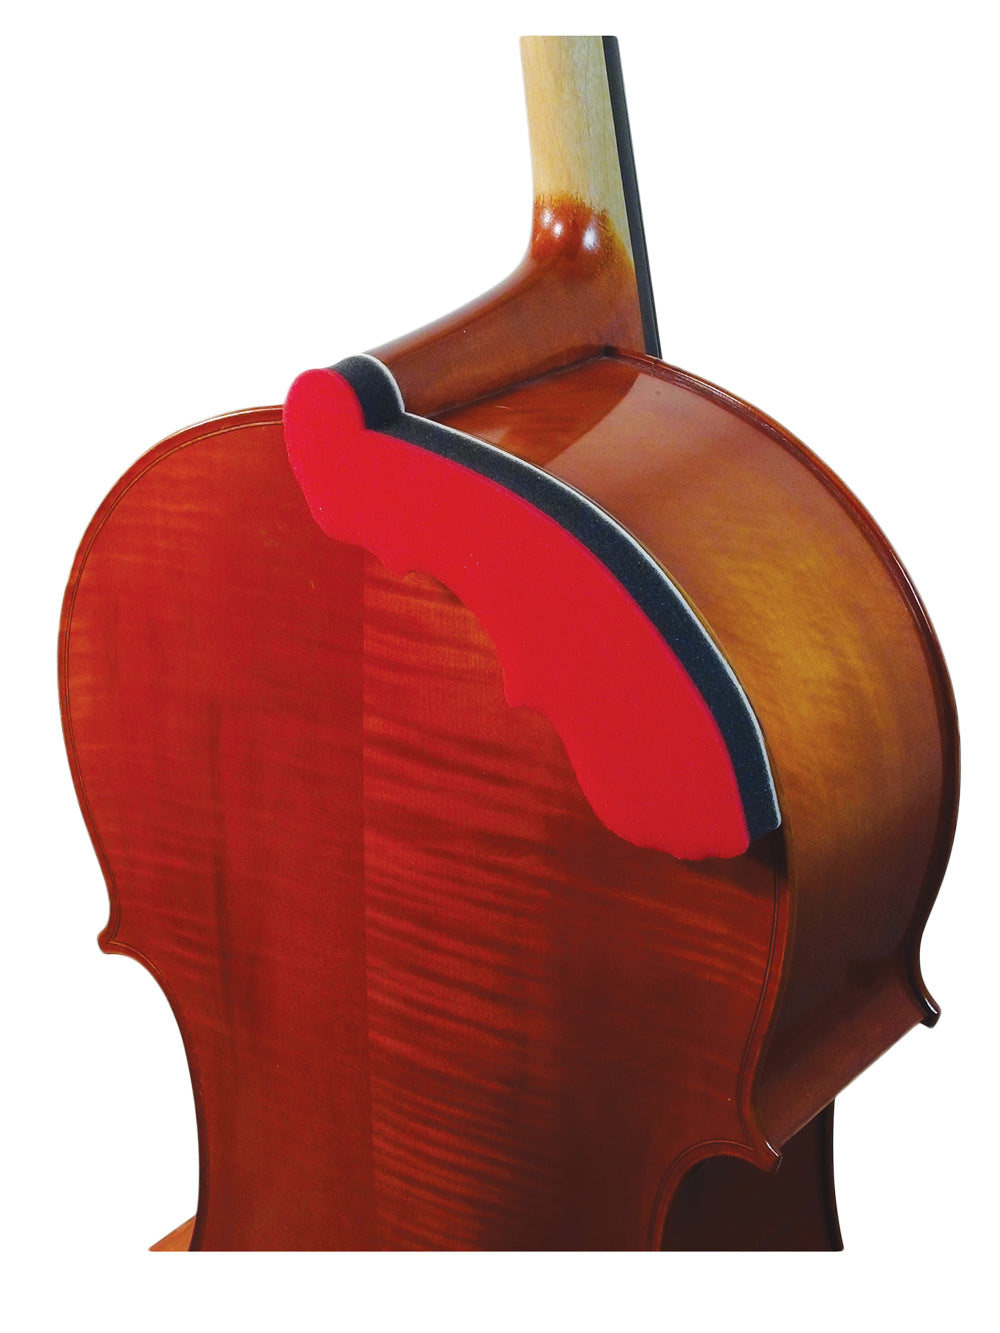 Quartet Cellist Cello Chest Rest